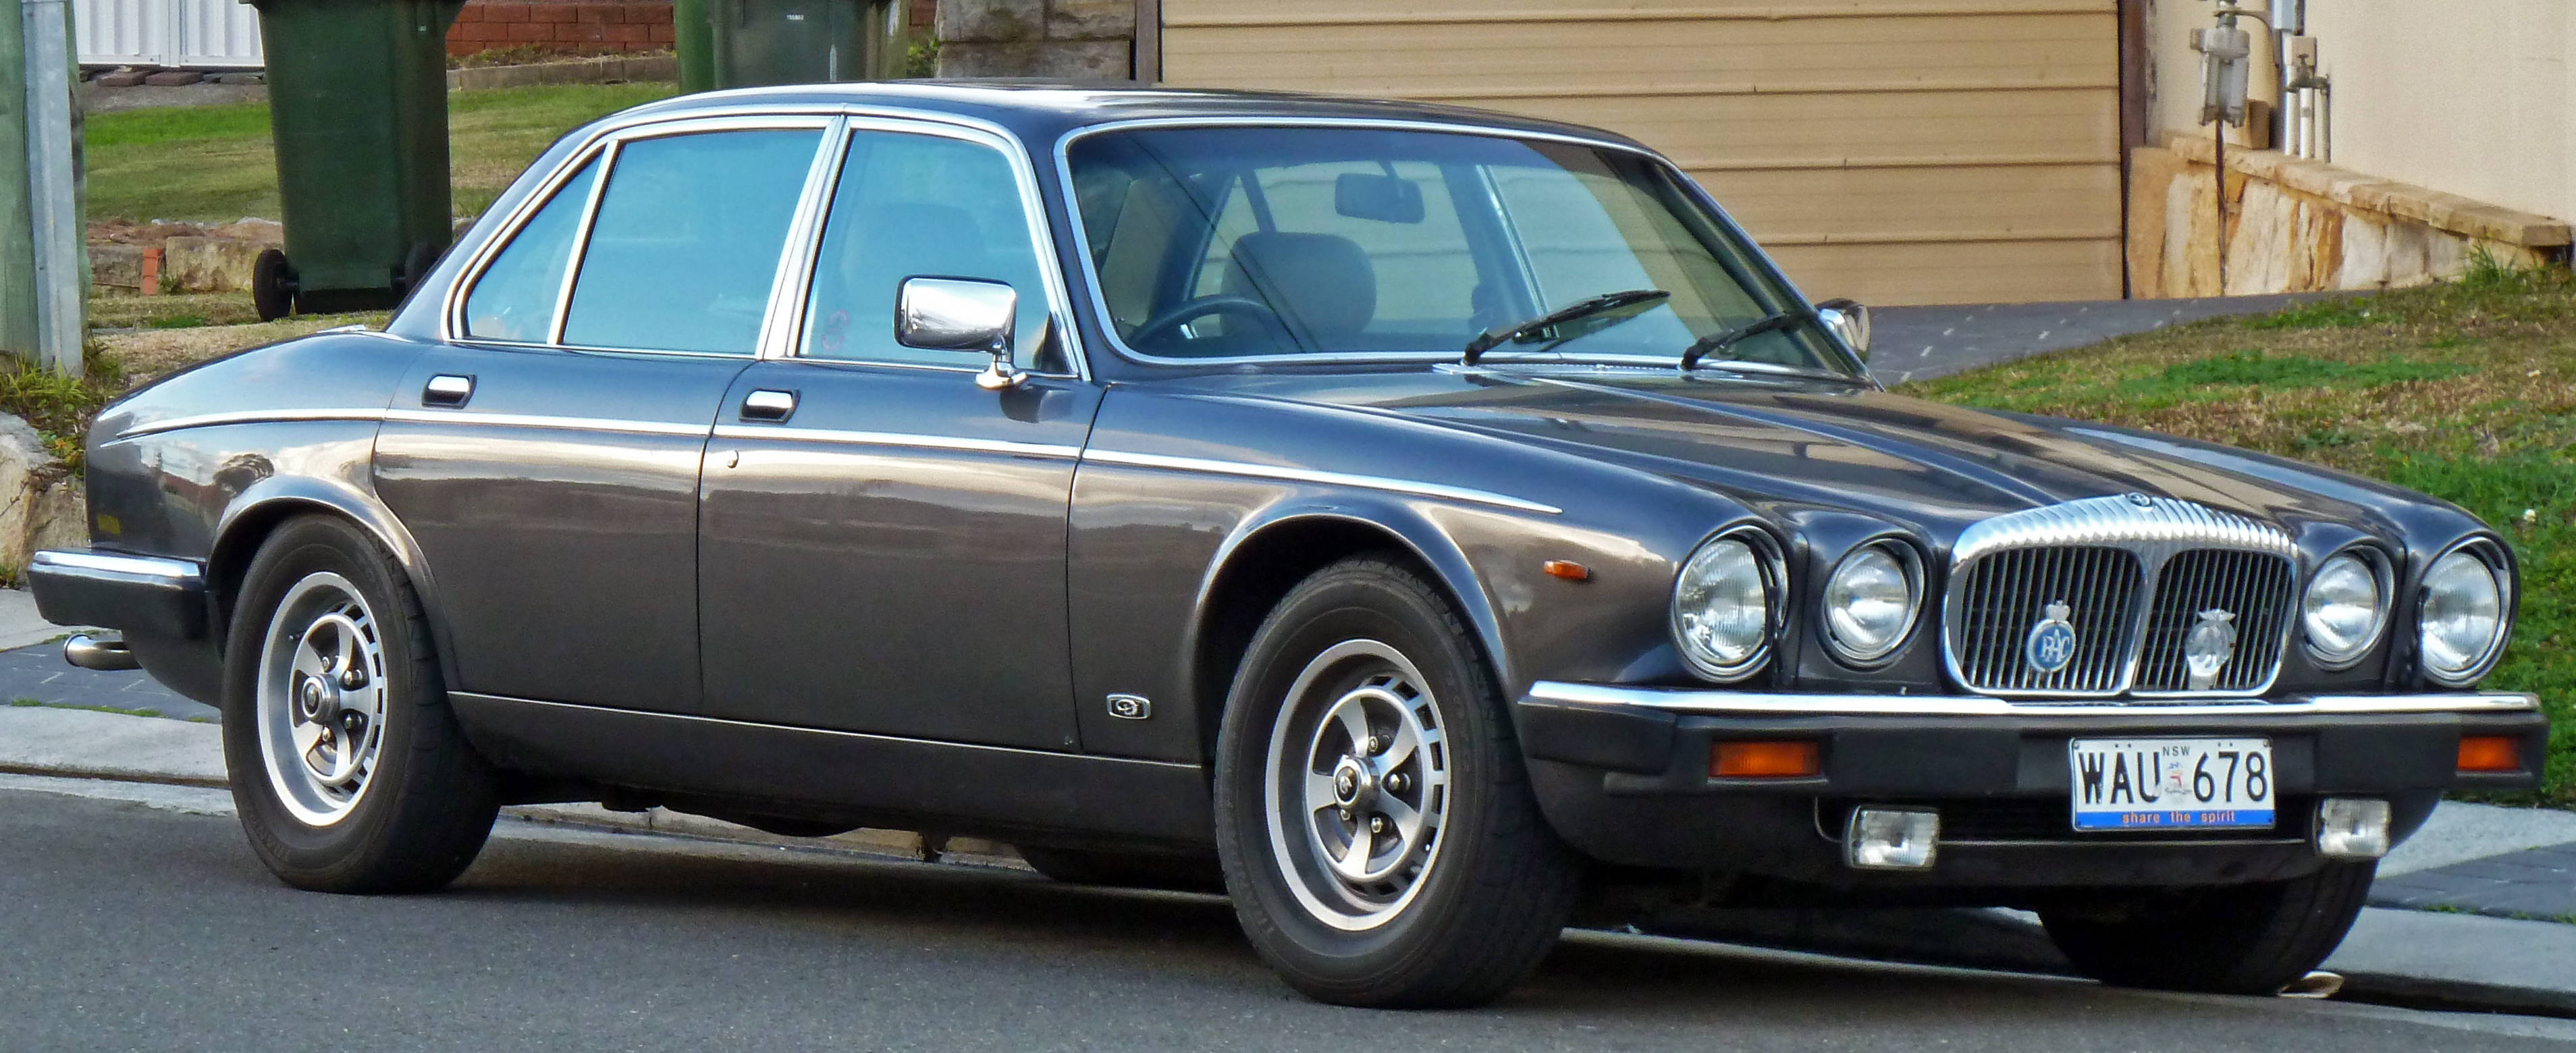 File 1986 1988 Daimler Double Six Sedan 01 Jpg Wikimedia